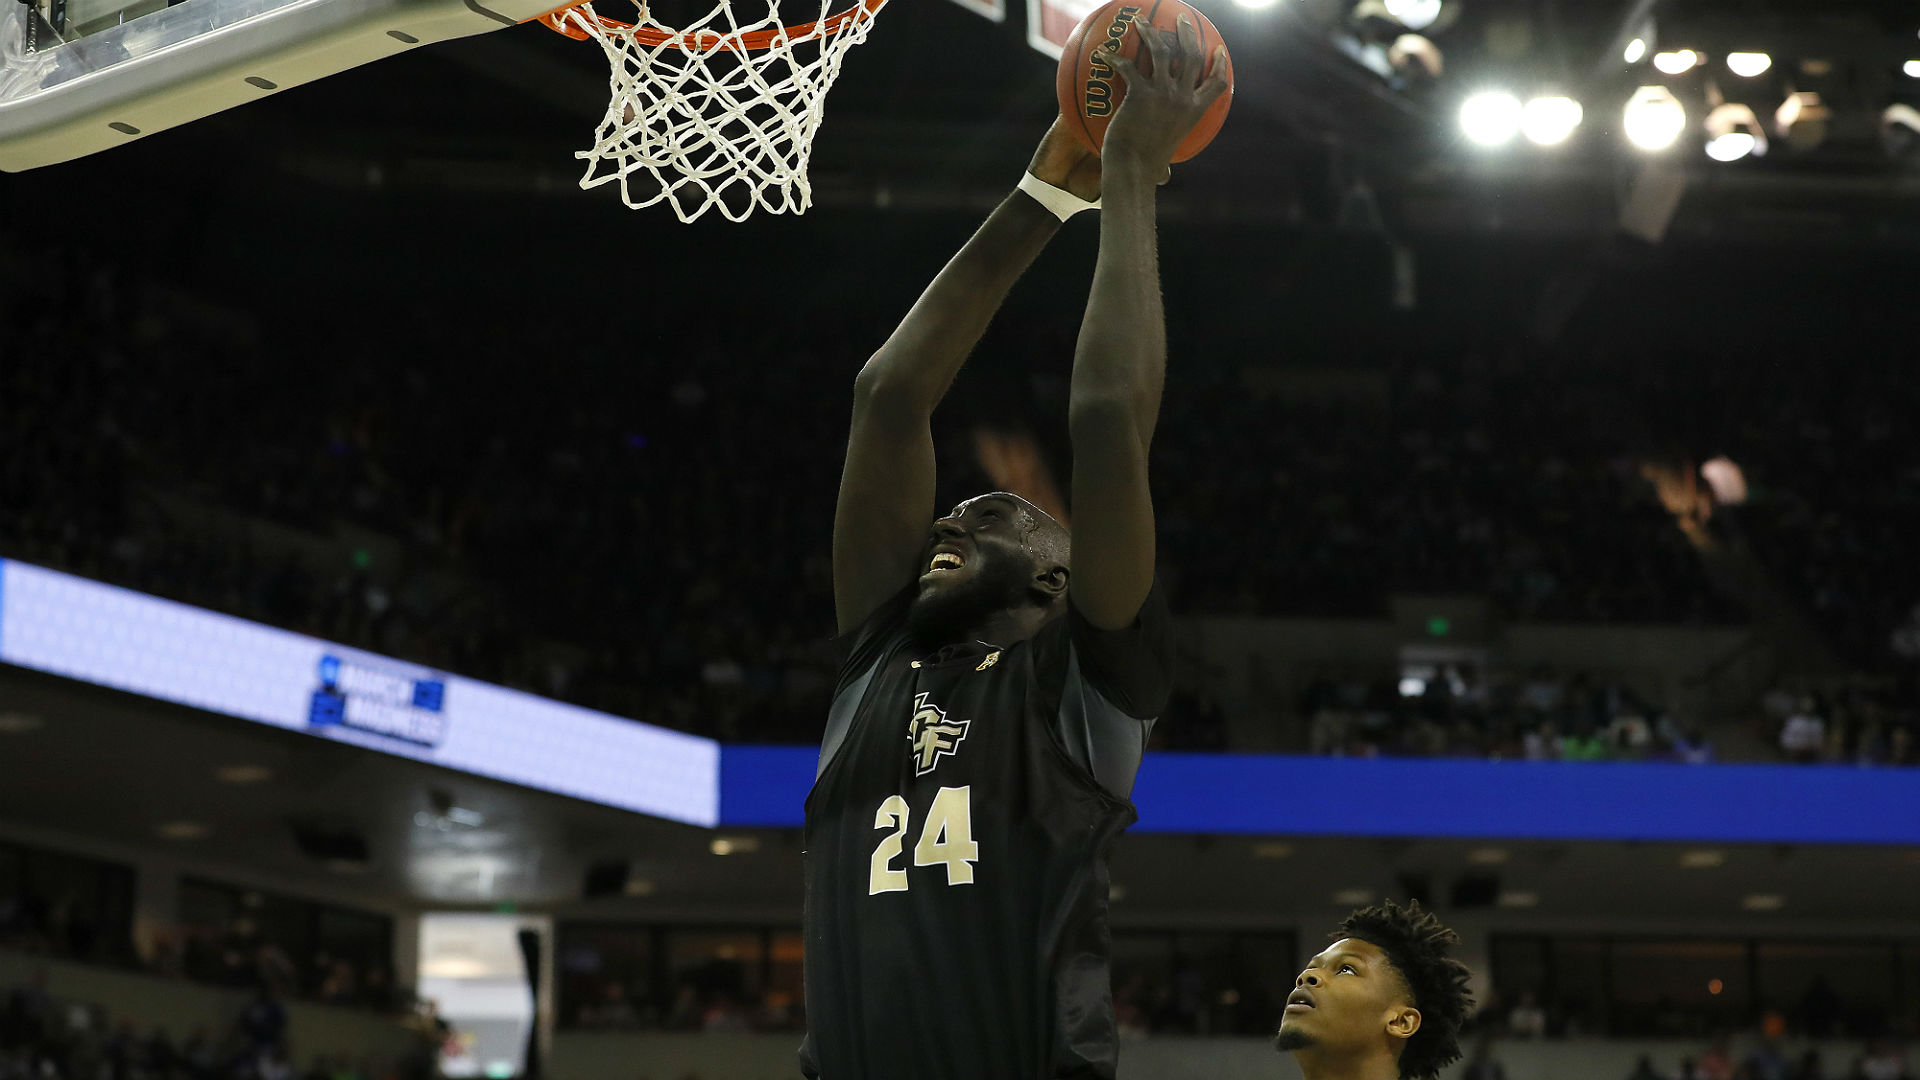 Here's how Tacko Fall could find a role in the NBA